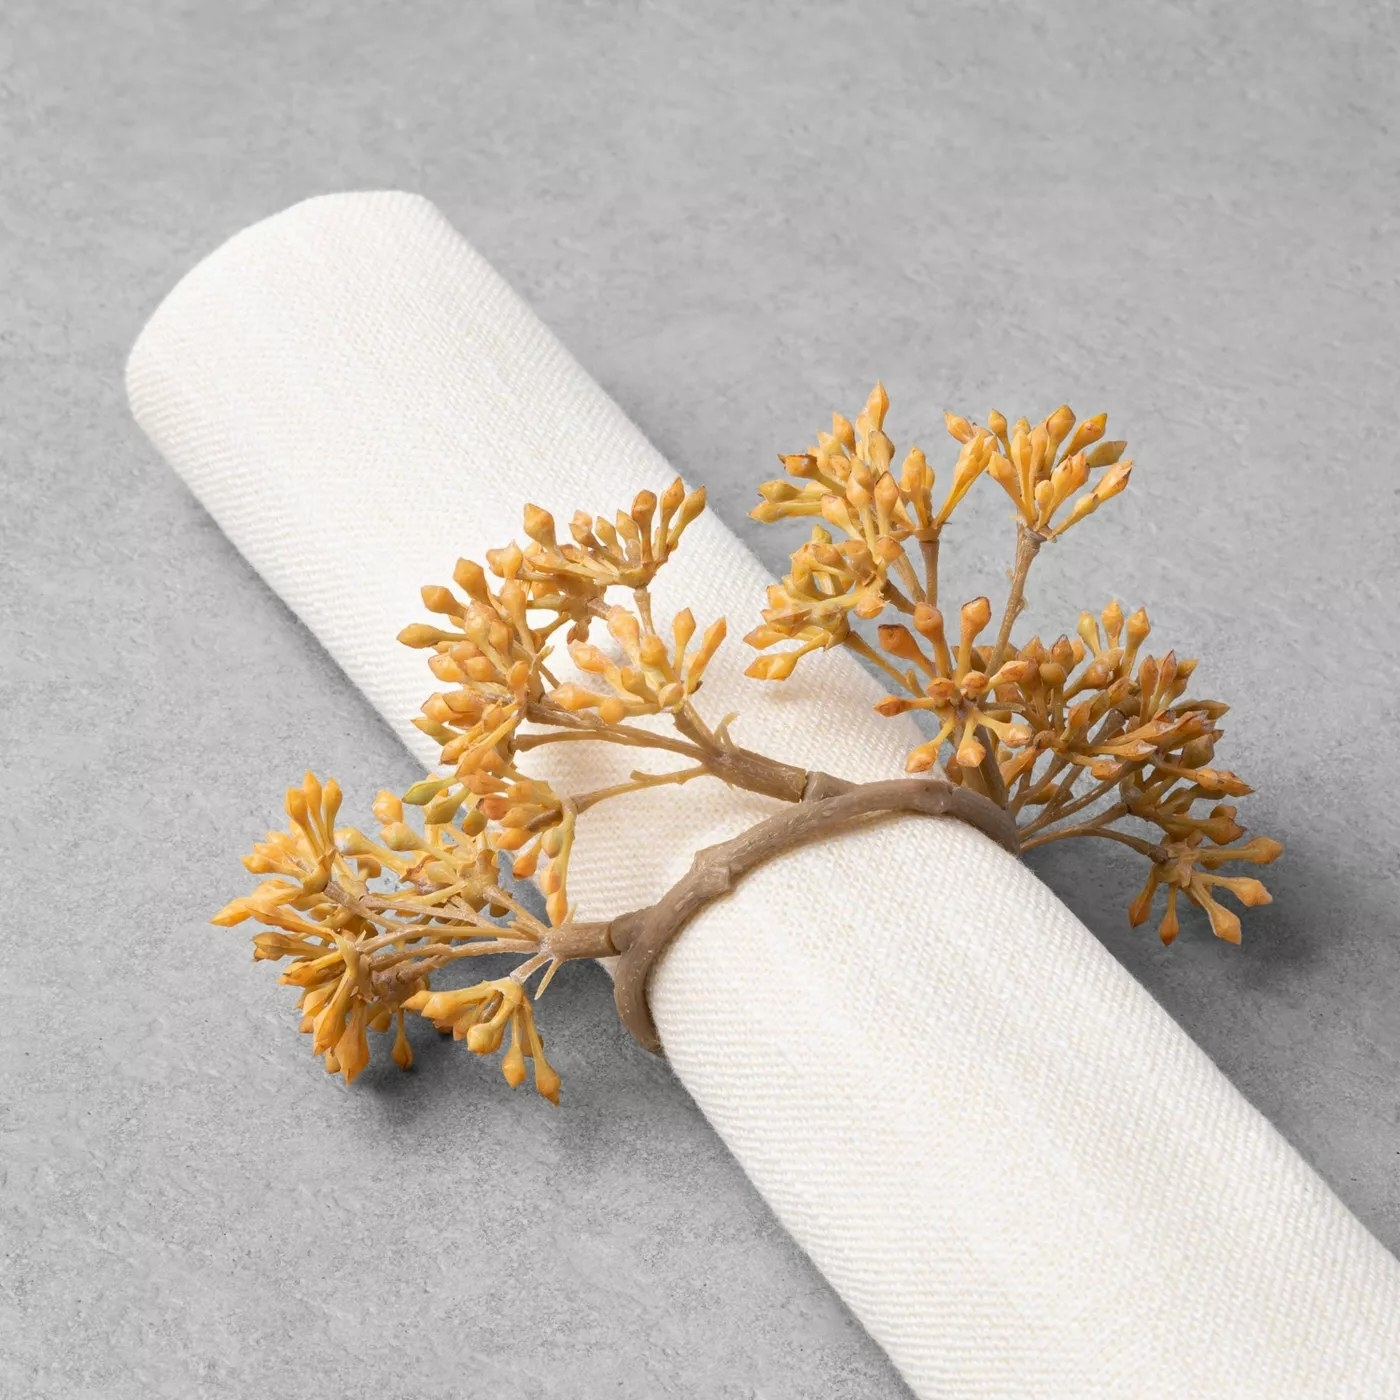 The napkin ring with faux flowers holding a napkin together